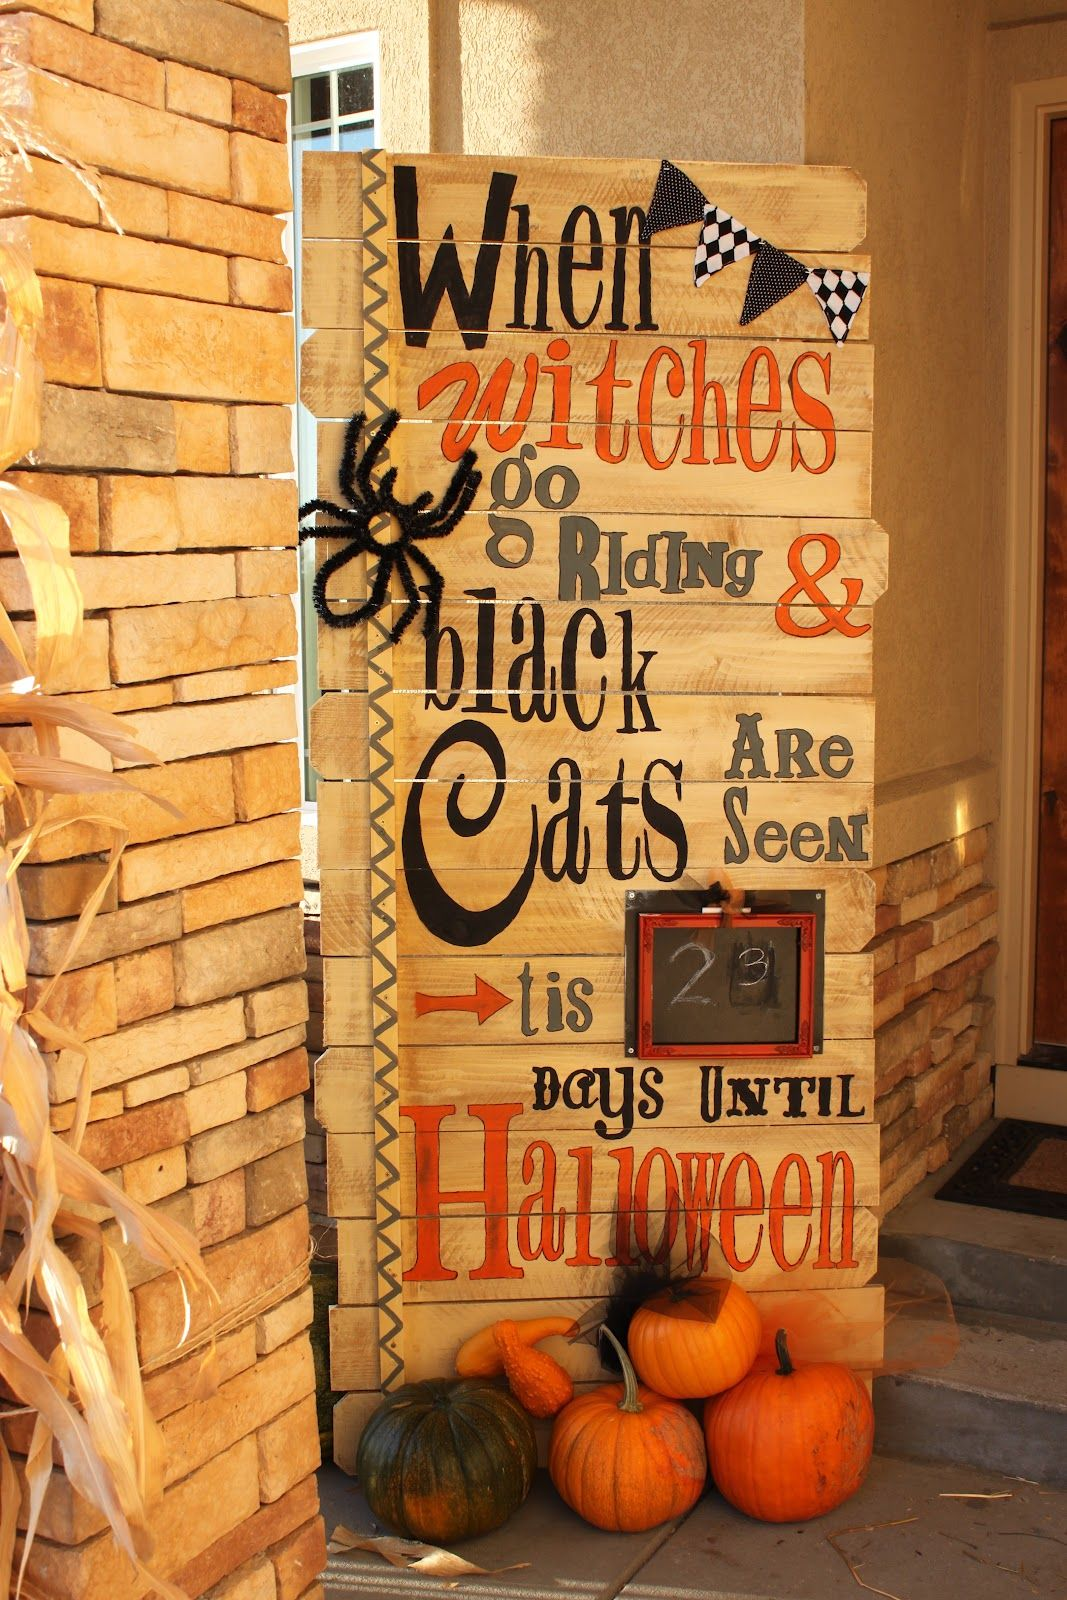 Count down to Halloween *use burlap inside to hang chalkboard then - Inside Halloween Decorations